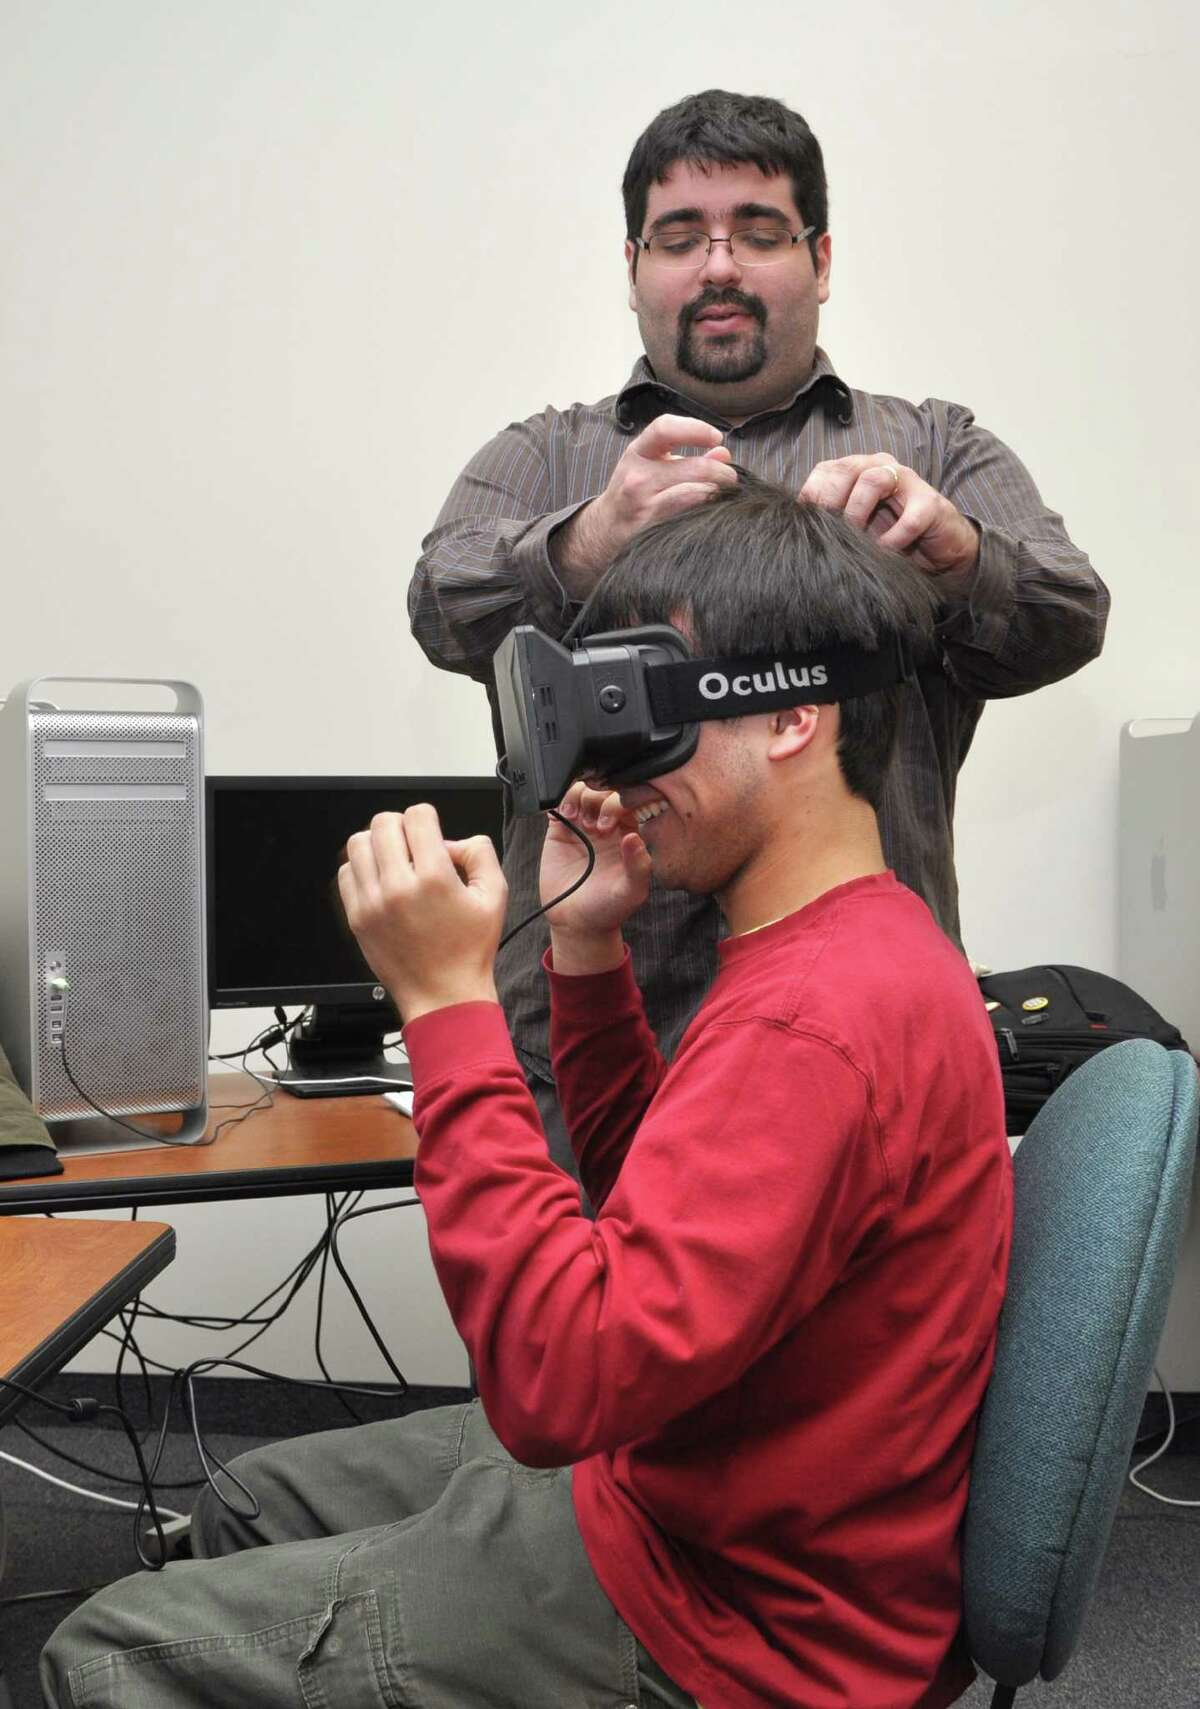 Ibrahim Yucel, a SUNY Polytechnic Institute assistant professor and faculty lead for the school's new interactive media and game design degree program, works with a student using the Oculus Rift virtual-reality headset.